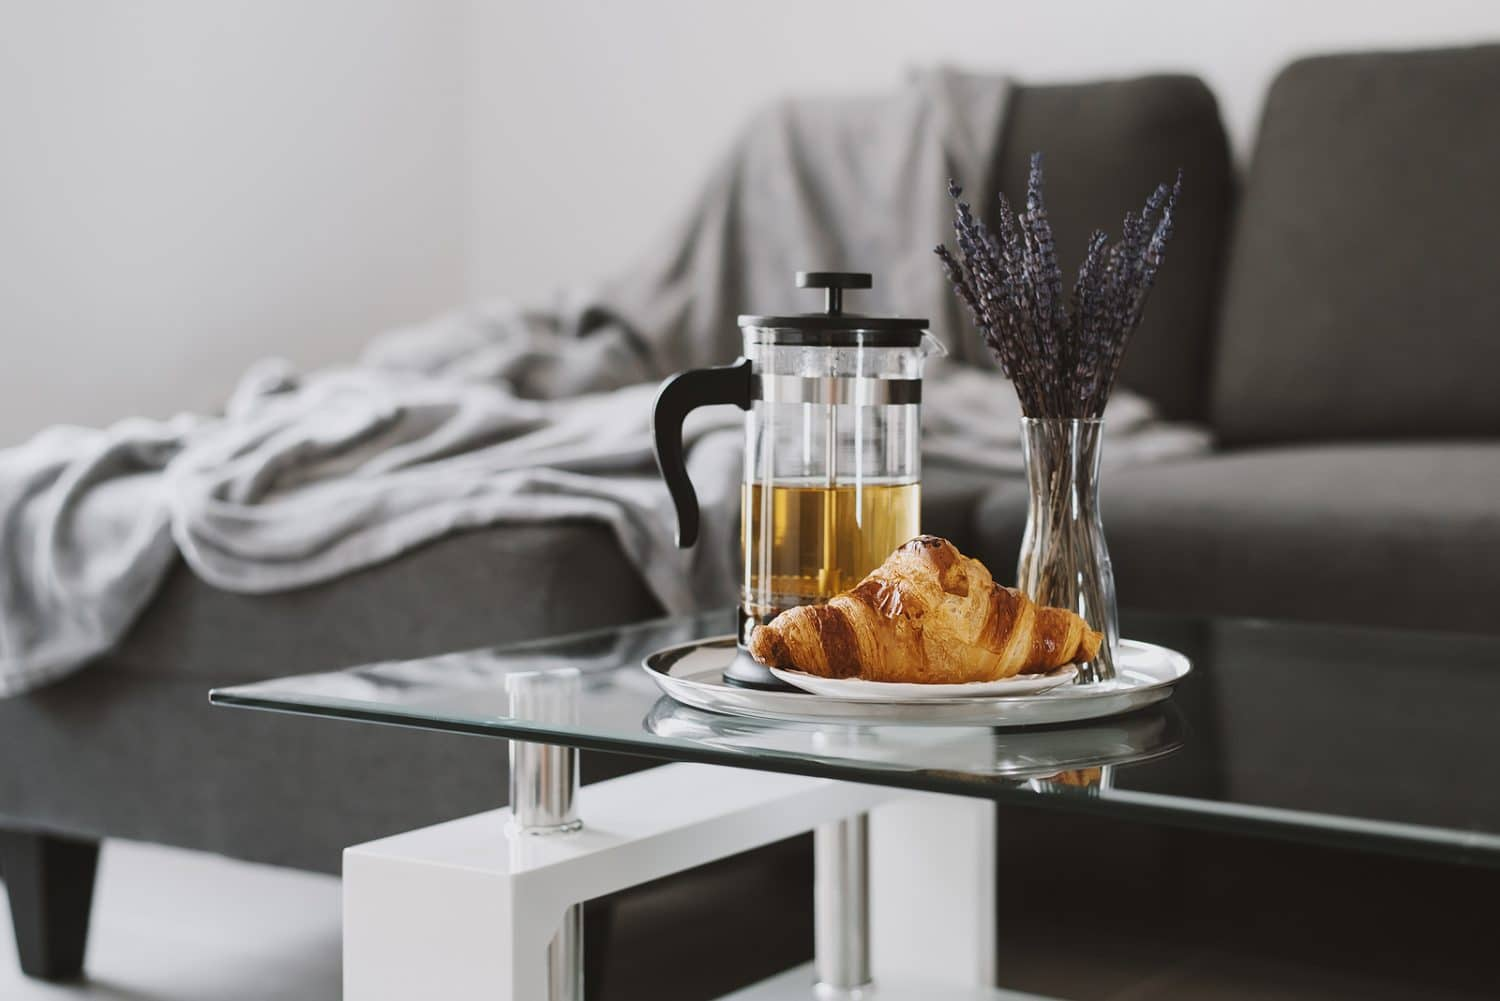 Fresh Croissant And French Press Pot With Brewed Herbal Tea And